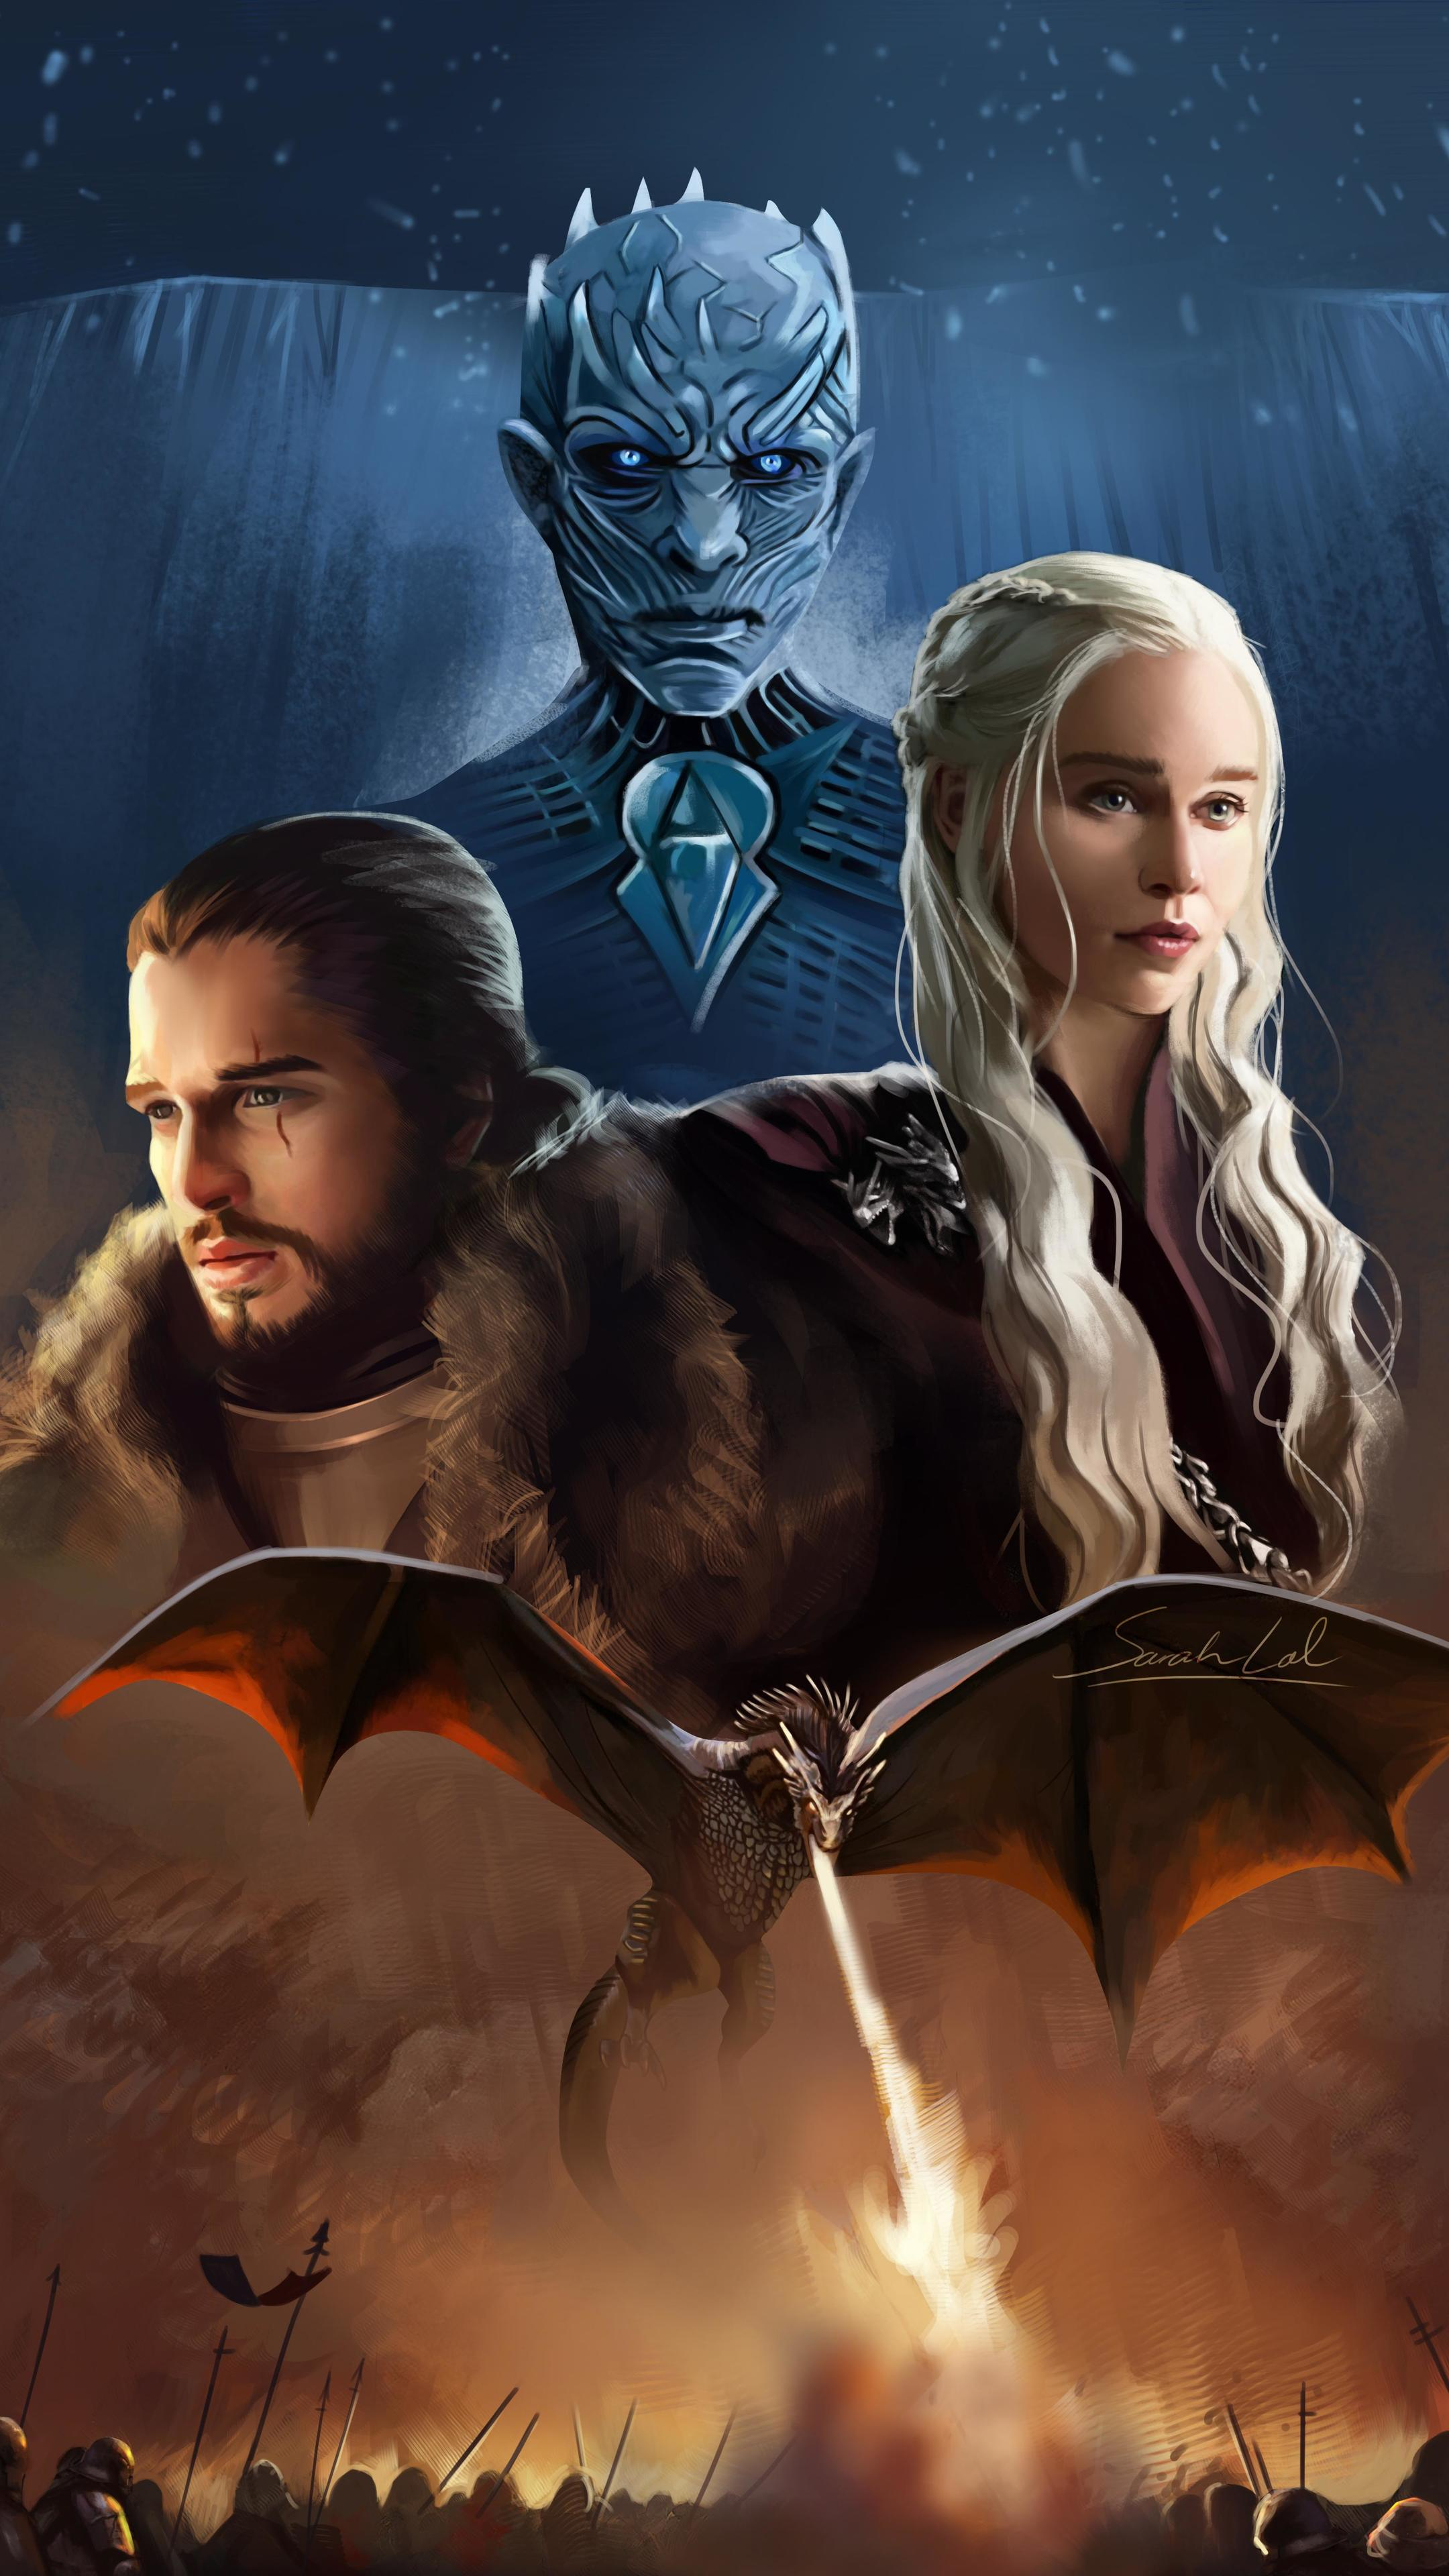 game-of-thrones-fanart-4k-0b-2160x3840 winterfell